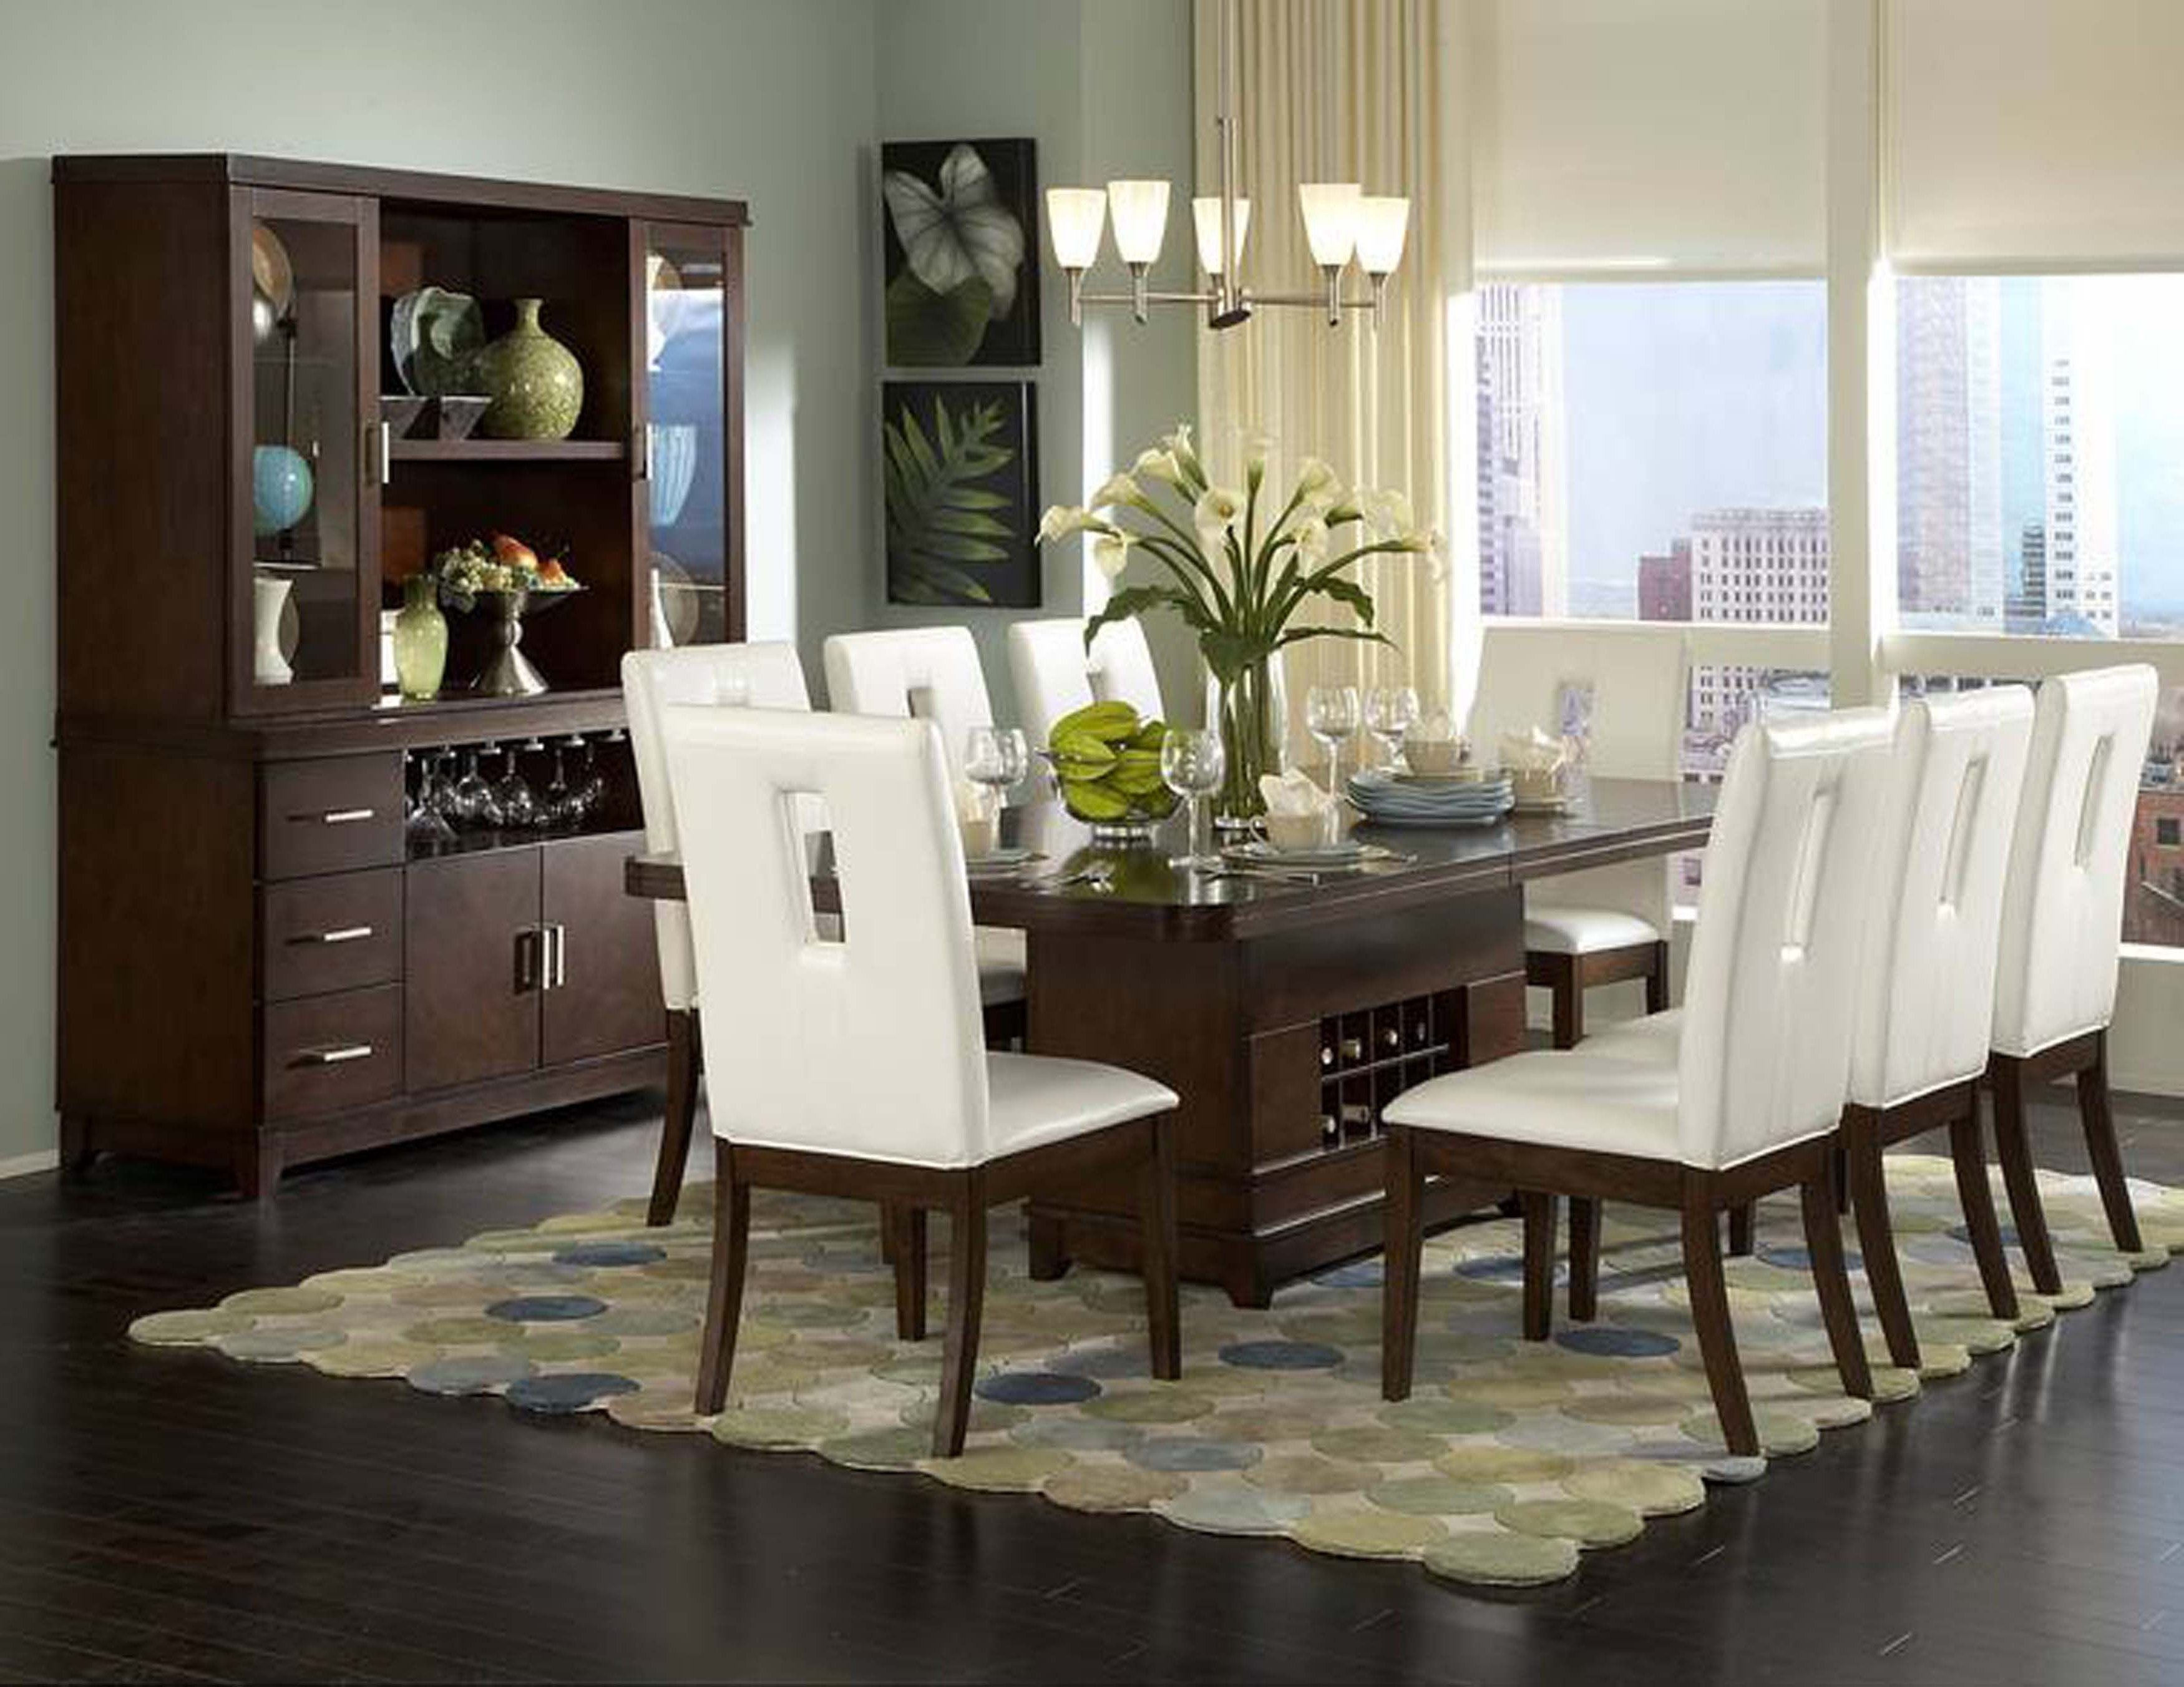 Dining Room. Outstanding 8 Chair Dining Set: Contemporary 8 Chair With Newest 8 Chairs Dining Sets (Gallery 8 of 25)